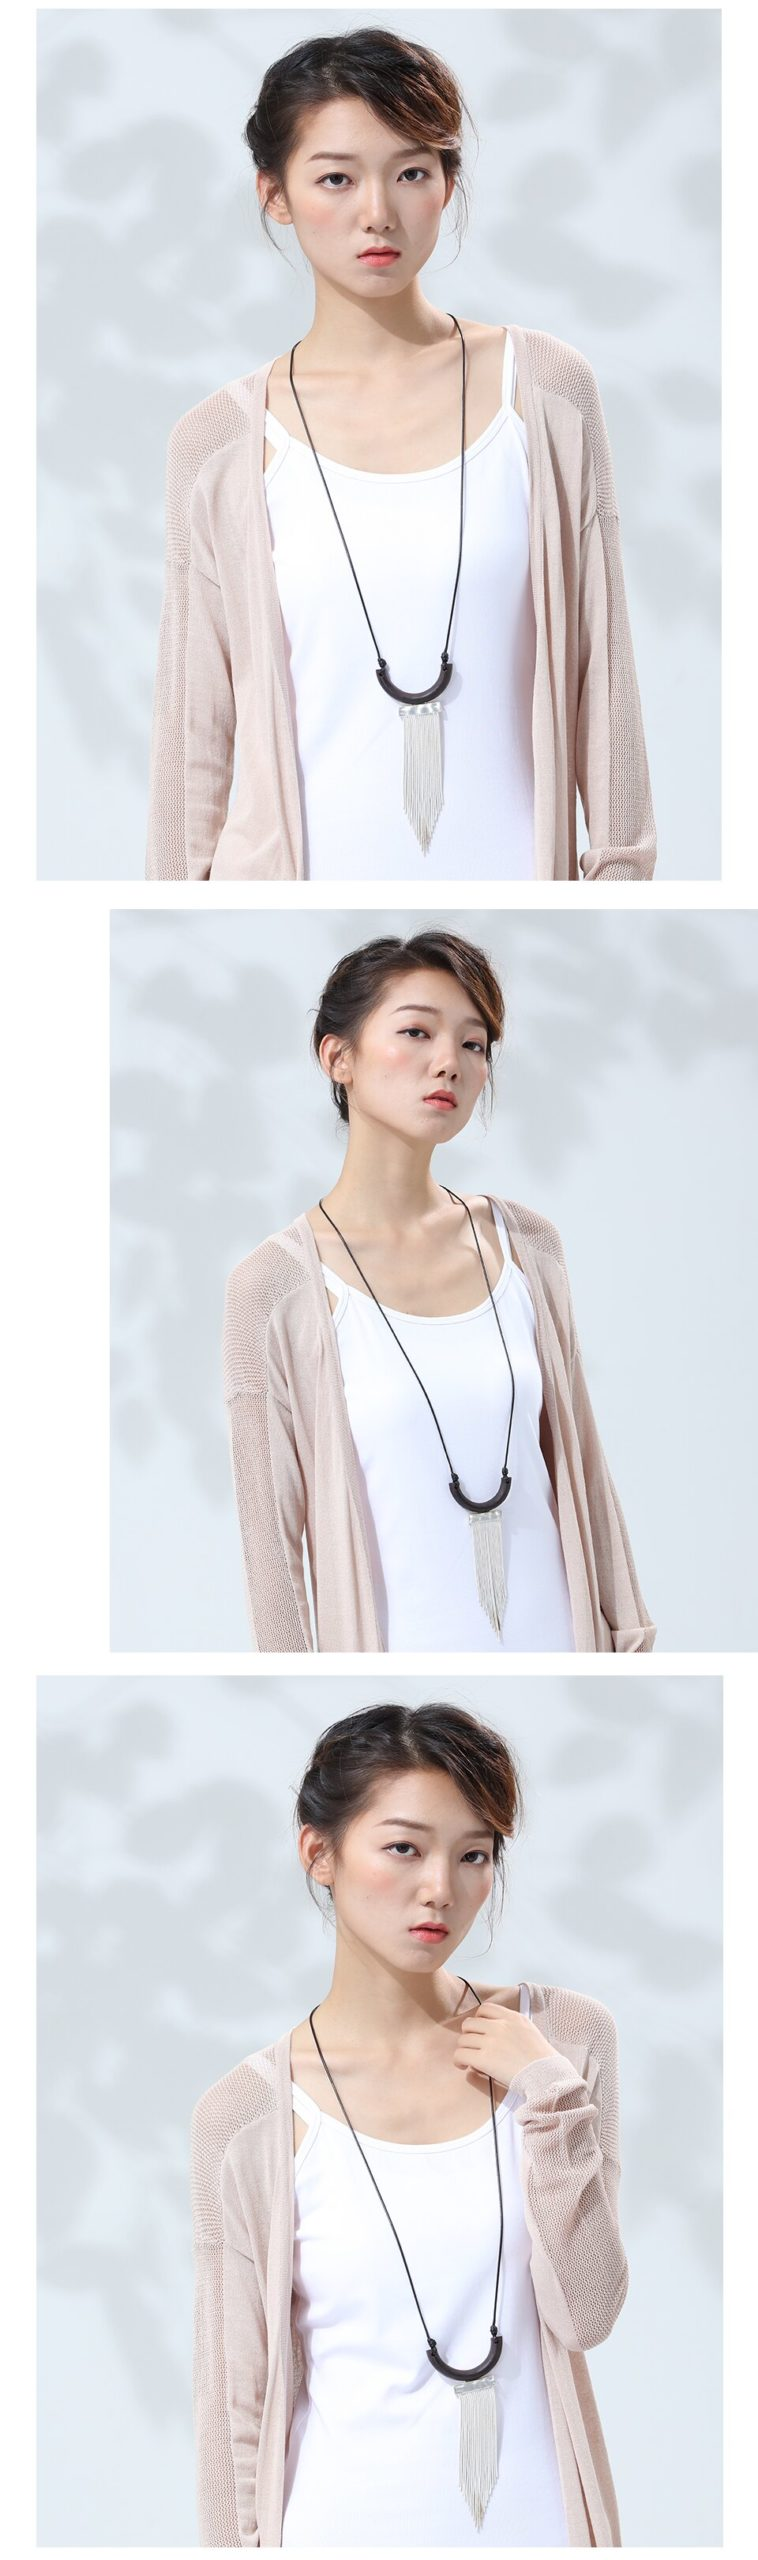 Kinds Handmade Sandalwood Women Pendant & Necklaces Rope Sweater Chain Wooden Necklace Women Fashion Jewelry Wholesale Present